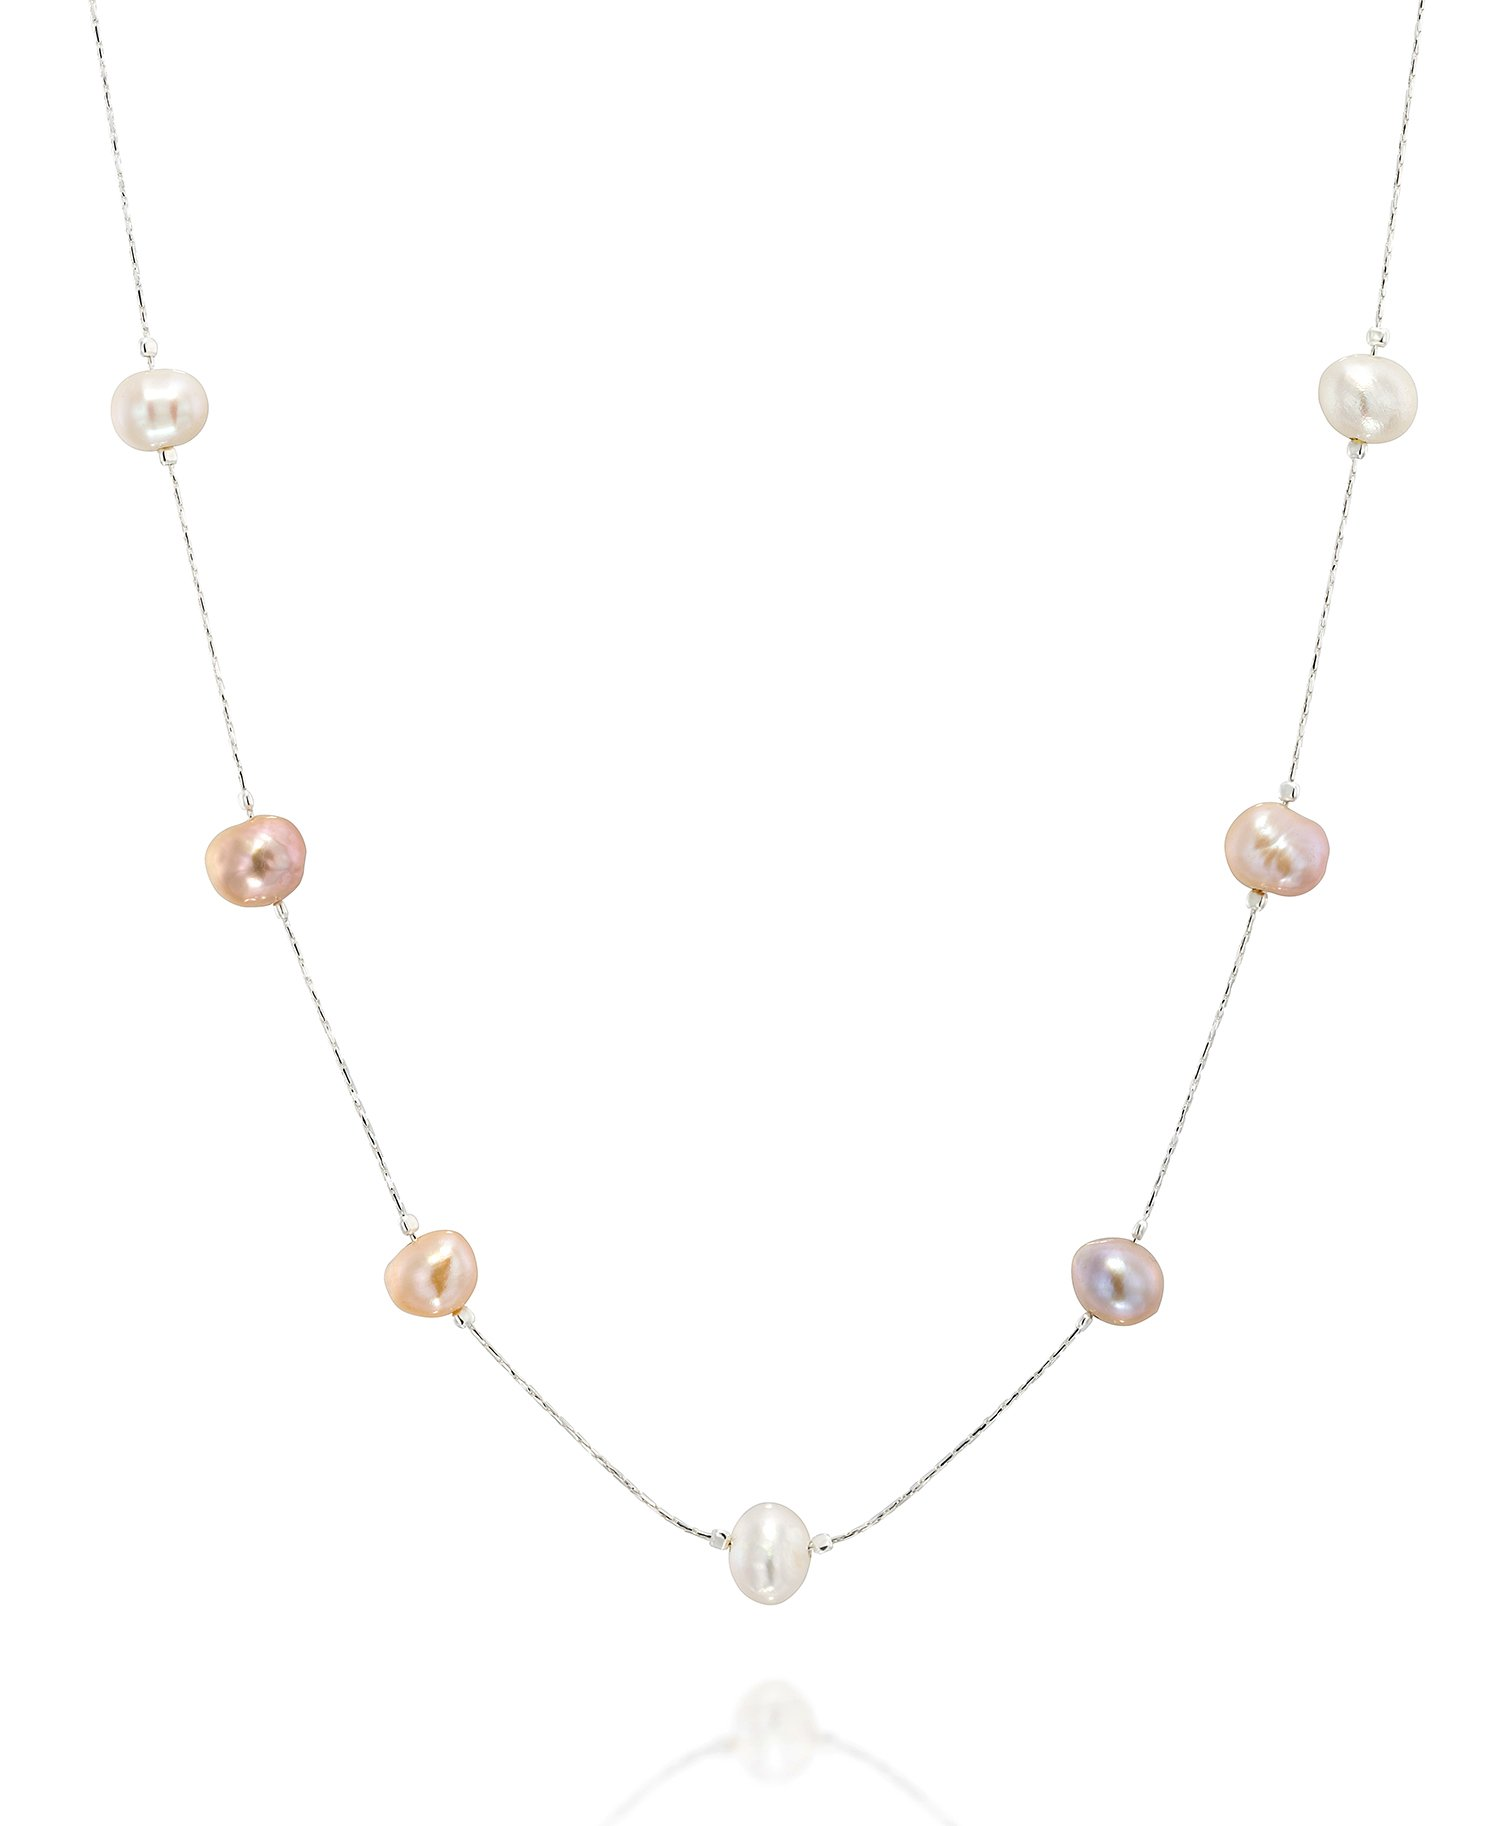 Multi Color Cultured Pearl Station Necklace Made with 925 Sterling Silver Chain, 18'' + 4'' Extender